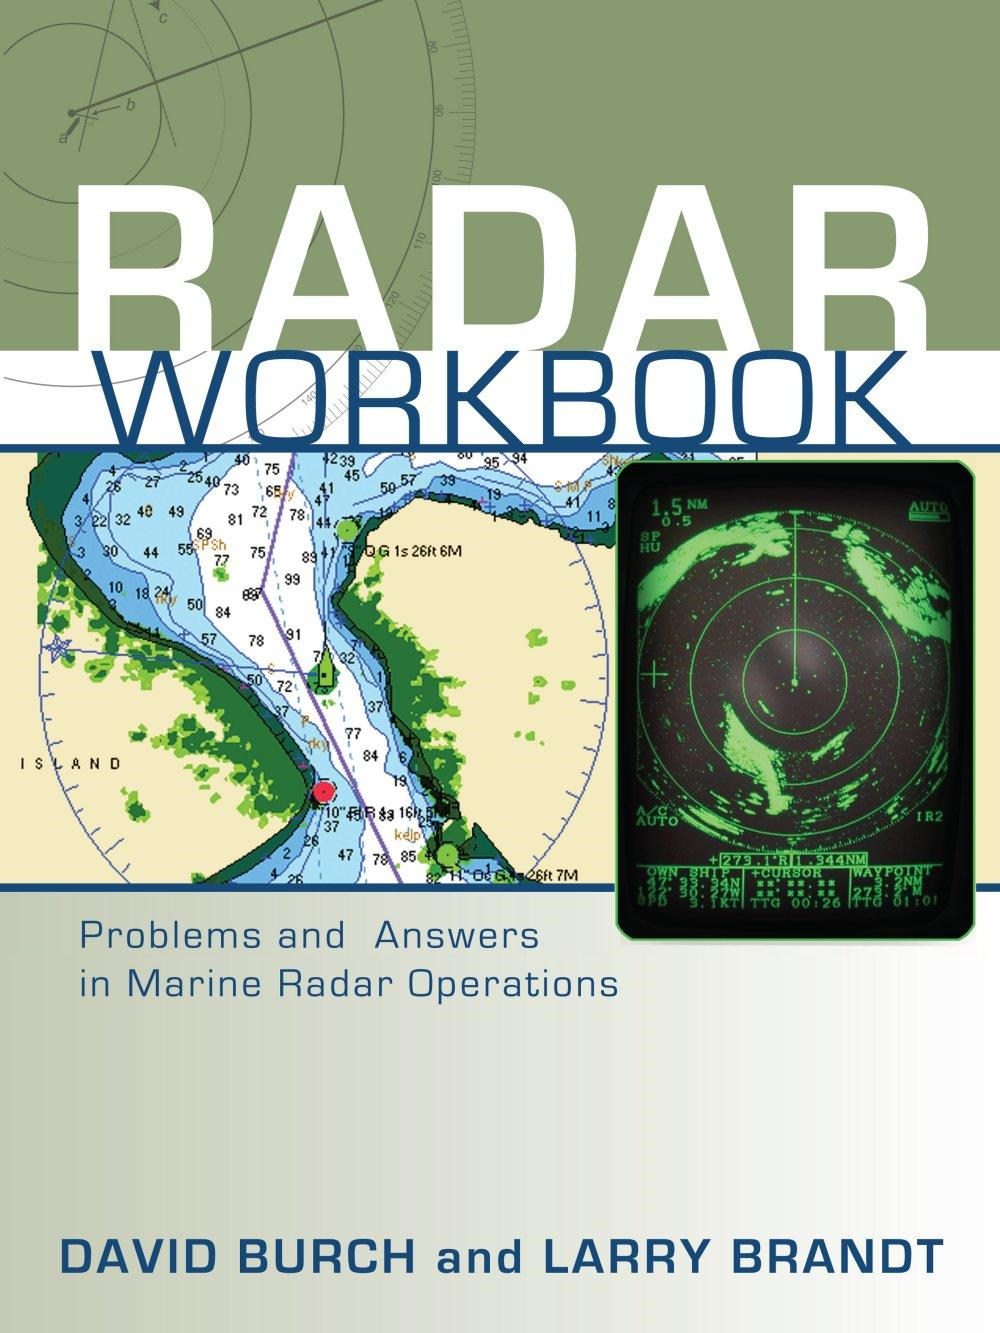 Radar Workbook - Problems and Answers in Marine Radar Operations By: Larry Brandt